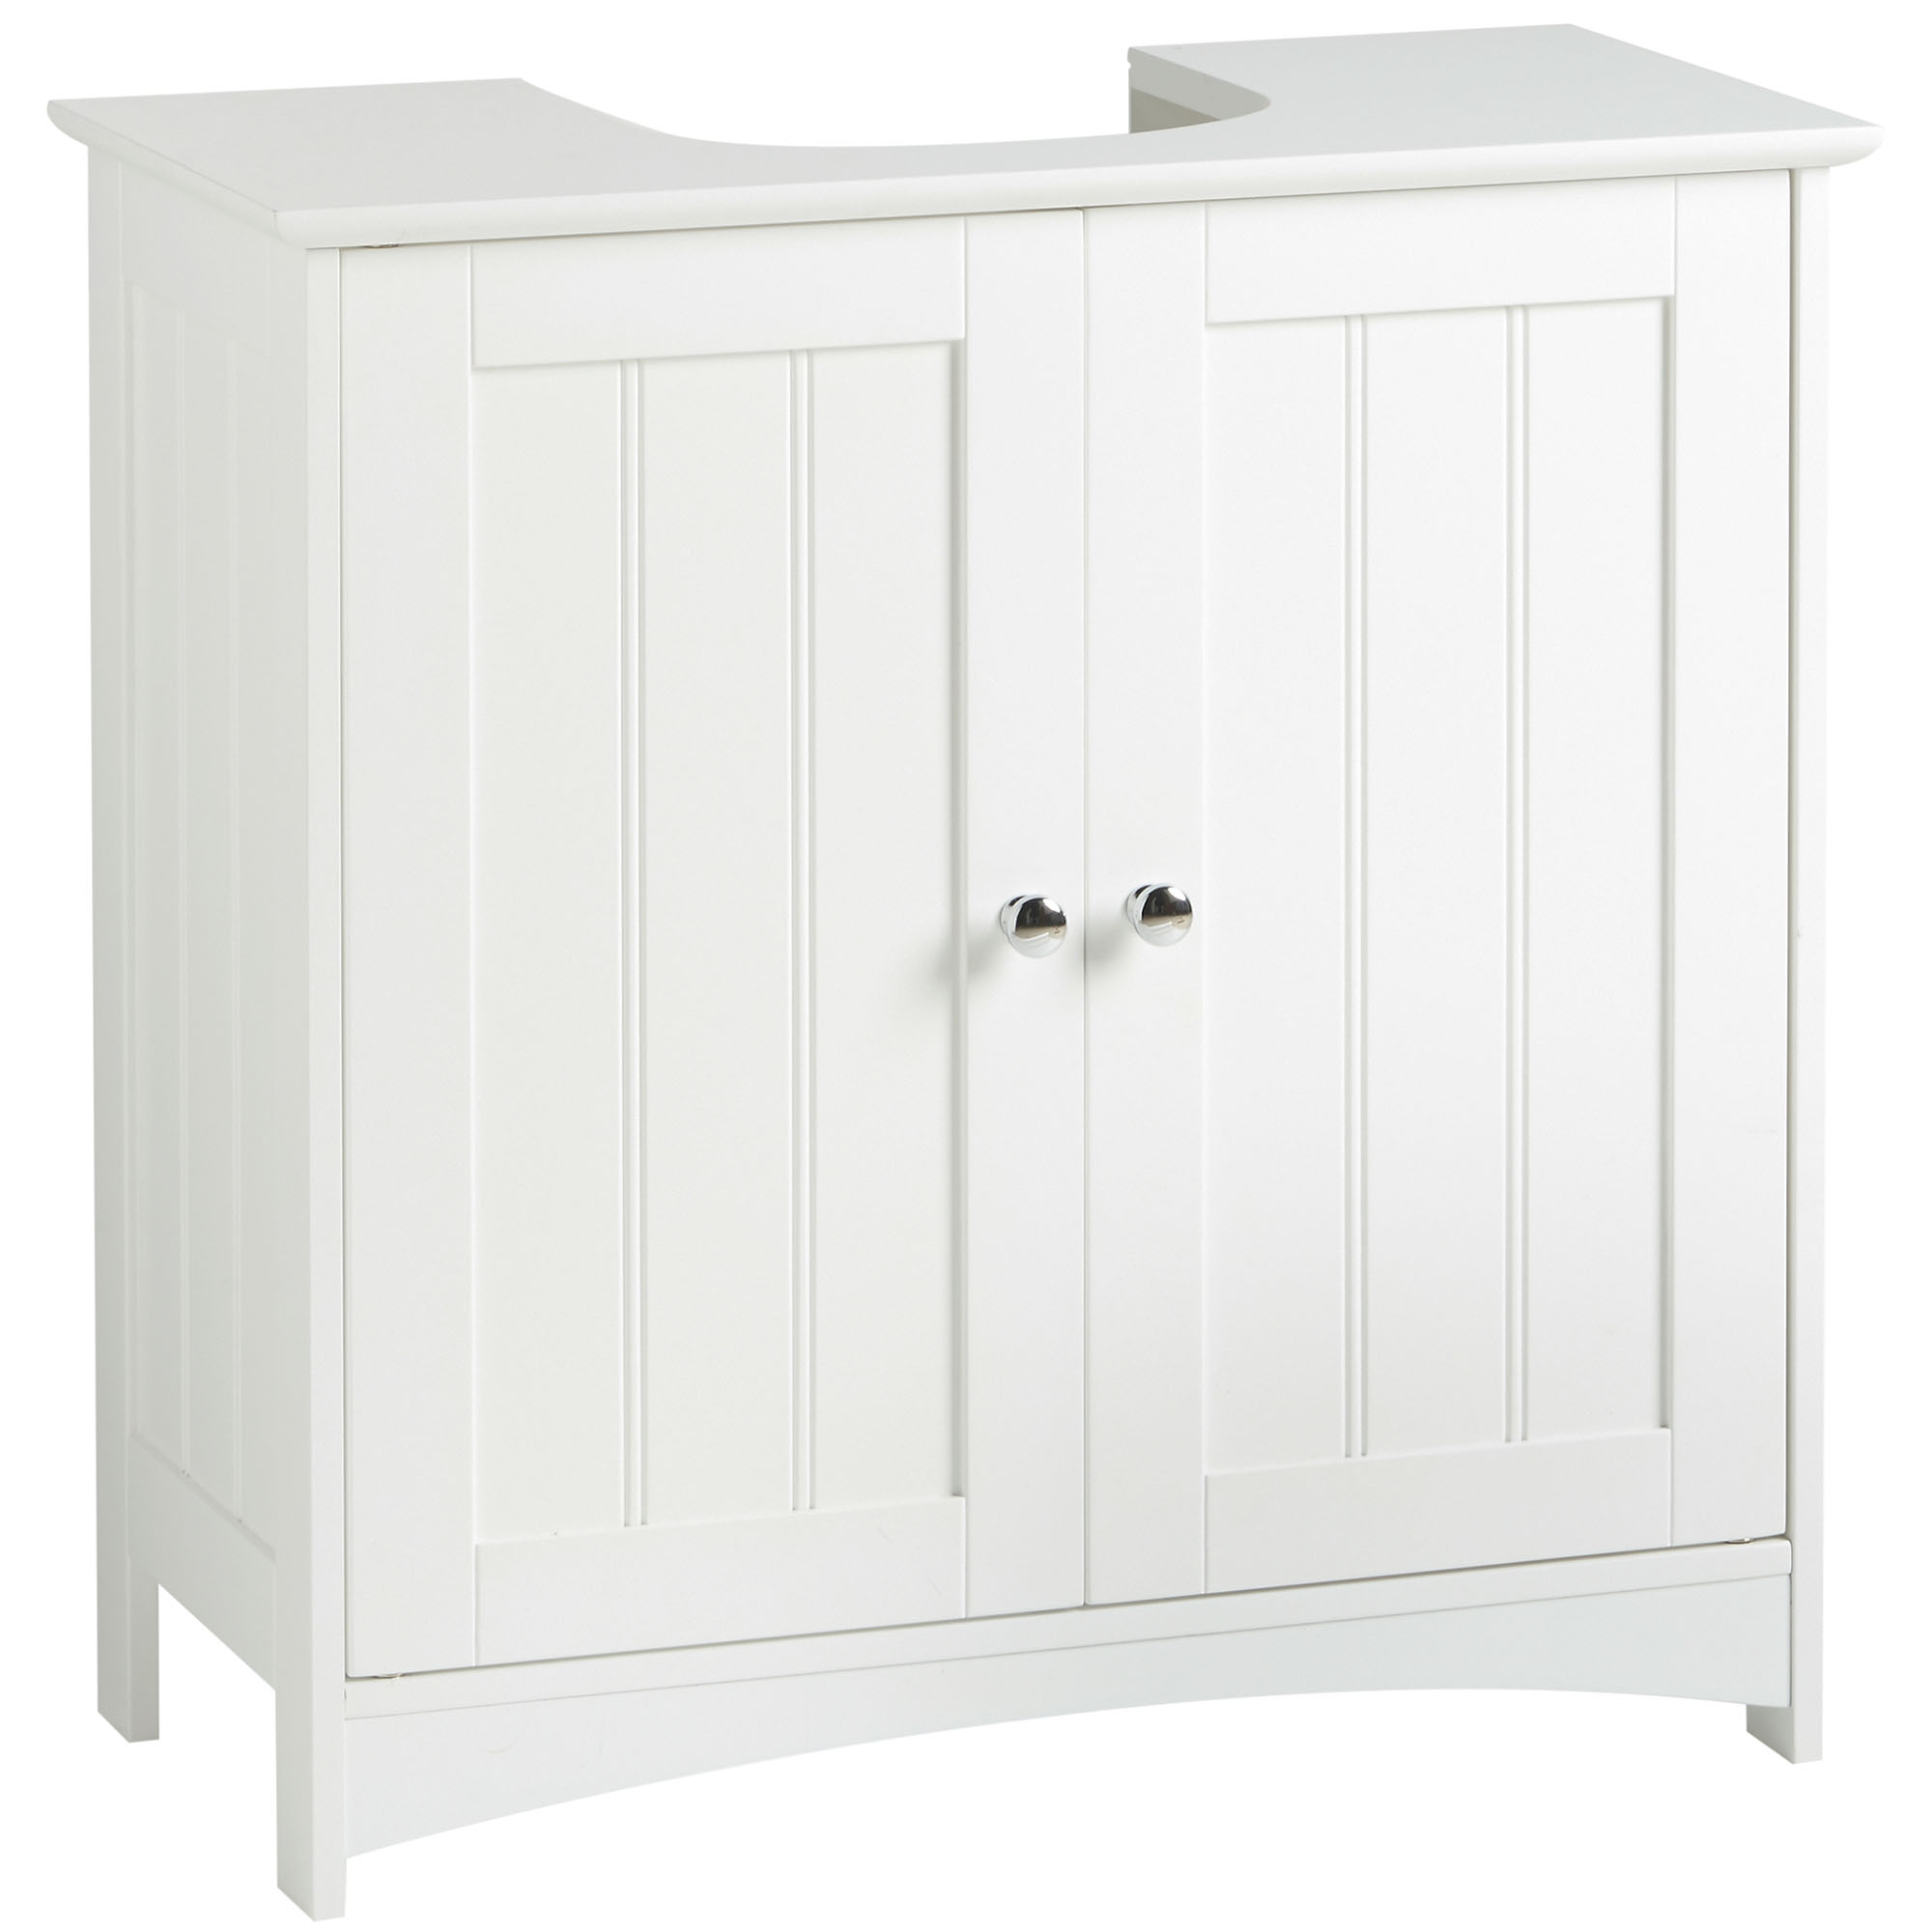 vonhaus colonial under basin cabinet cupboard white bathroom sink vanity unit ebay. Black Bedroom Furniture Sets. Home Design Ideas